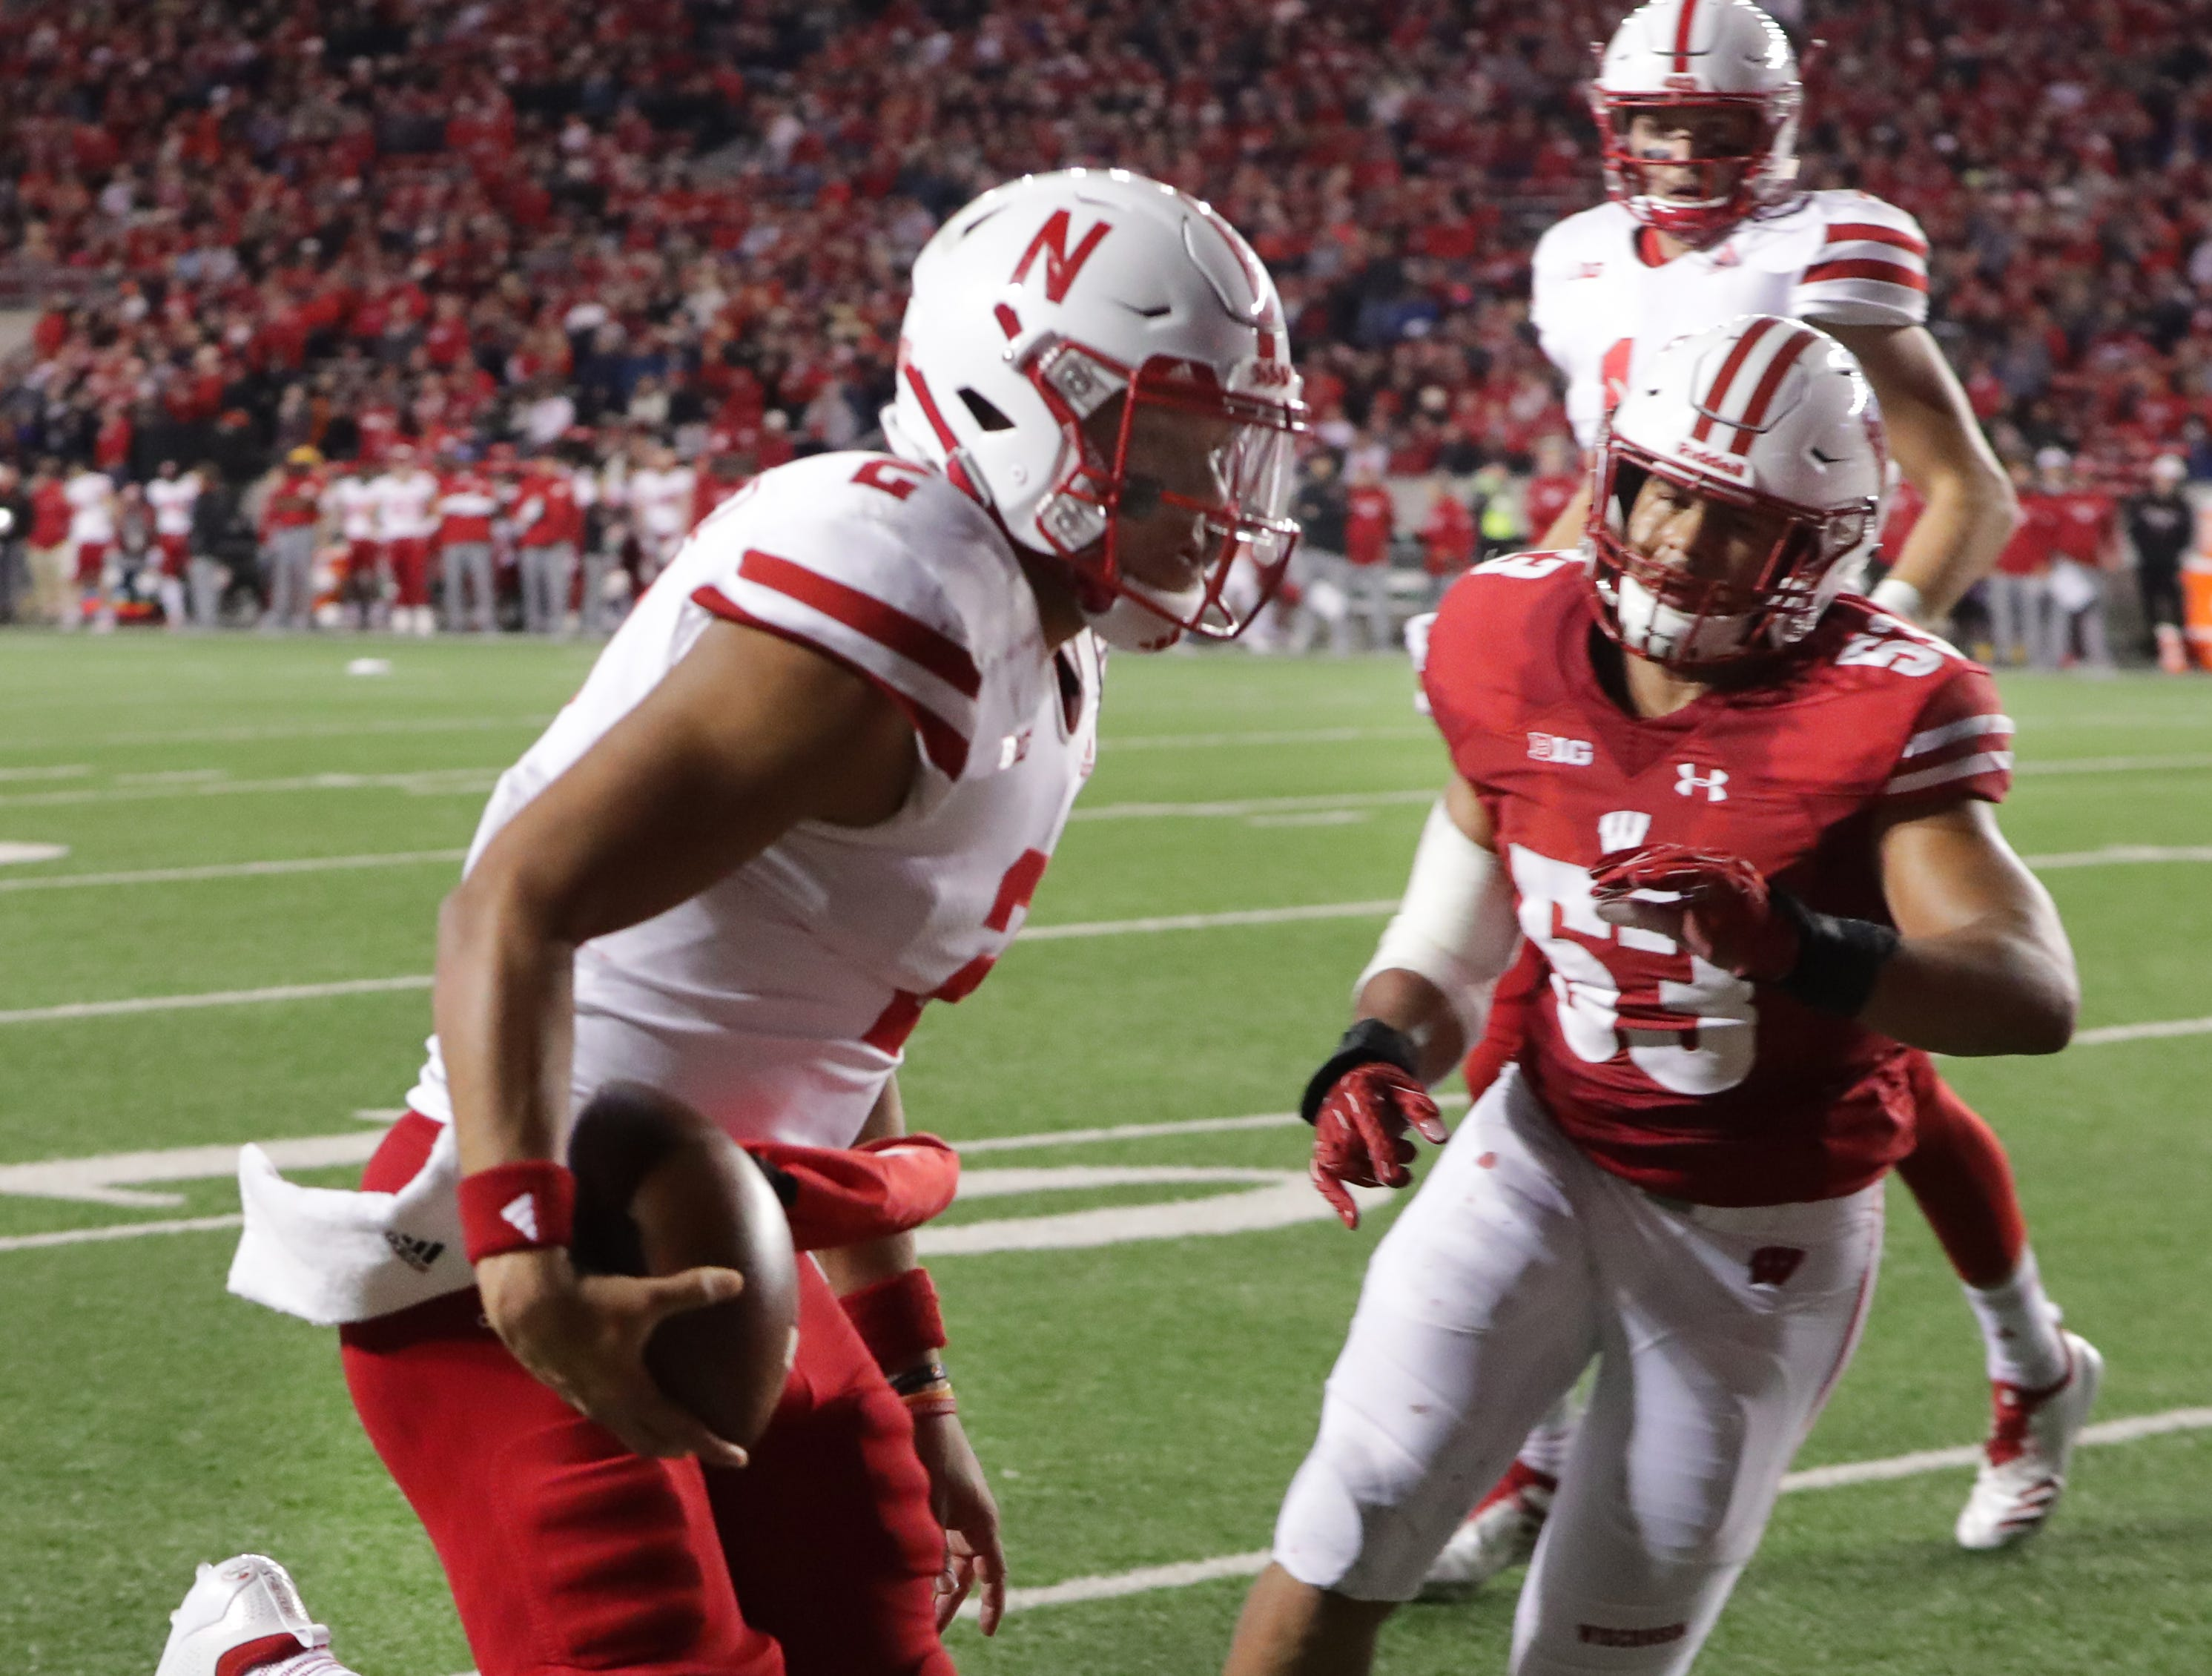 Nebraska quarterback Adrian Martinez outruns UW inside linebacker T.J. Edwards on a 7-yard touchdown scamper during the fourth quarter Saturday night.